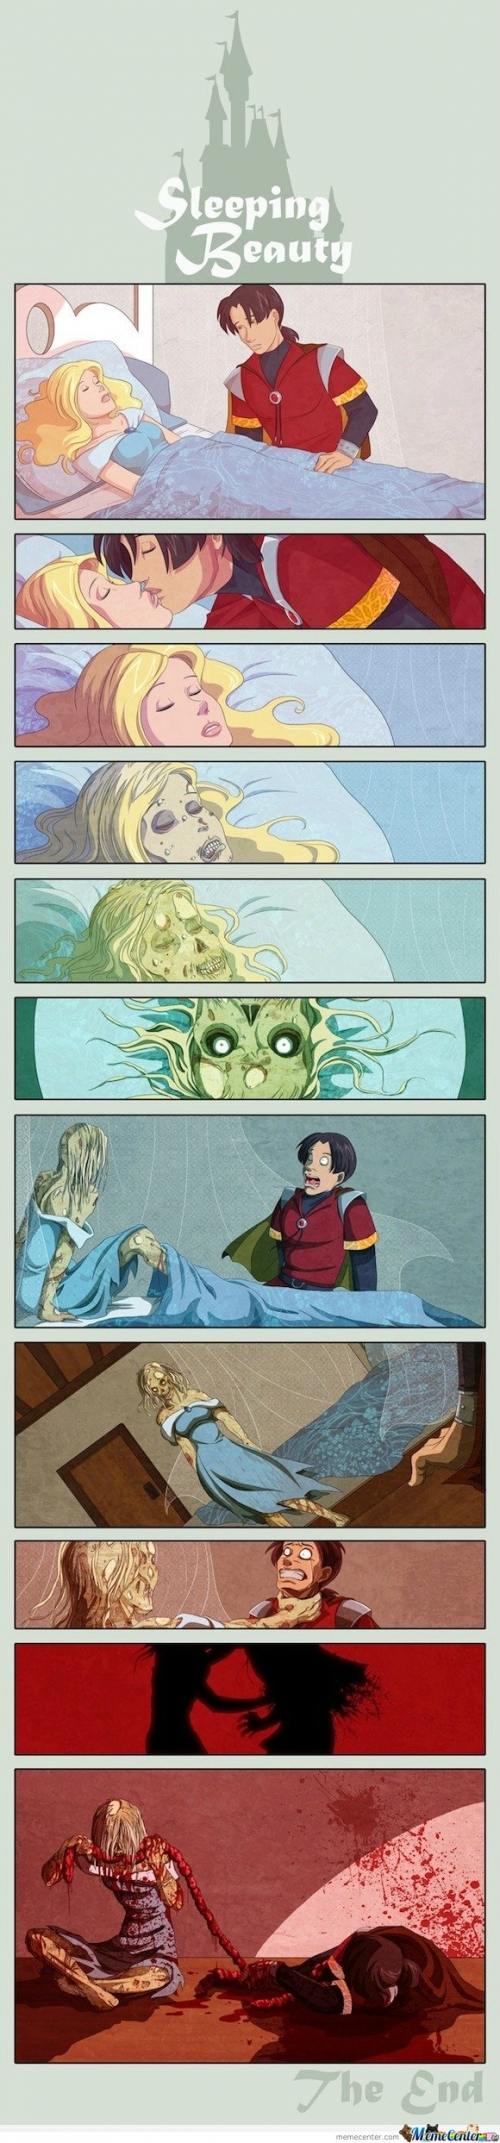 The sleeping beauty  comic